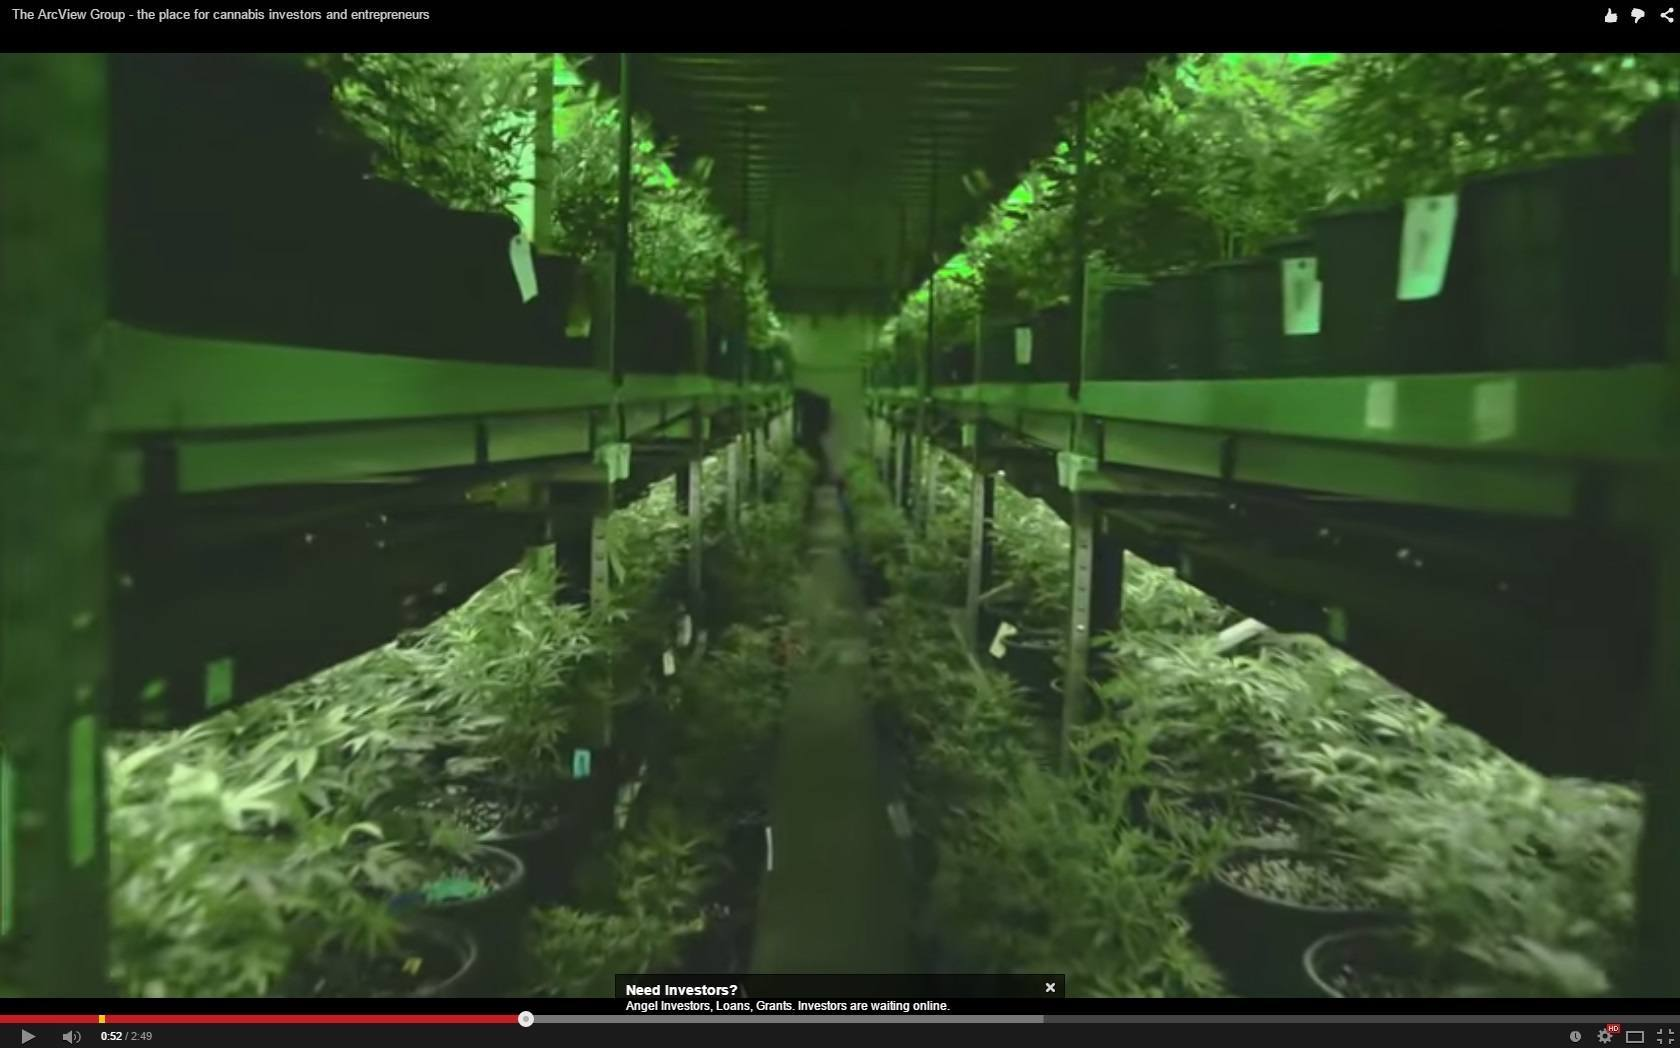 Image of You Tube video on Cannabis Investment